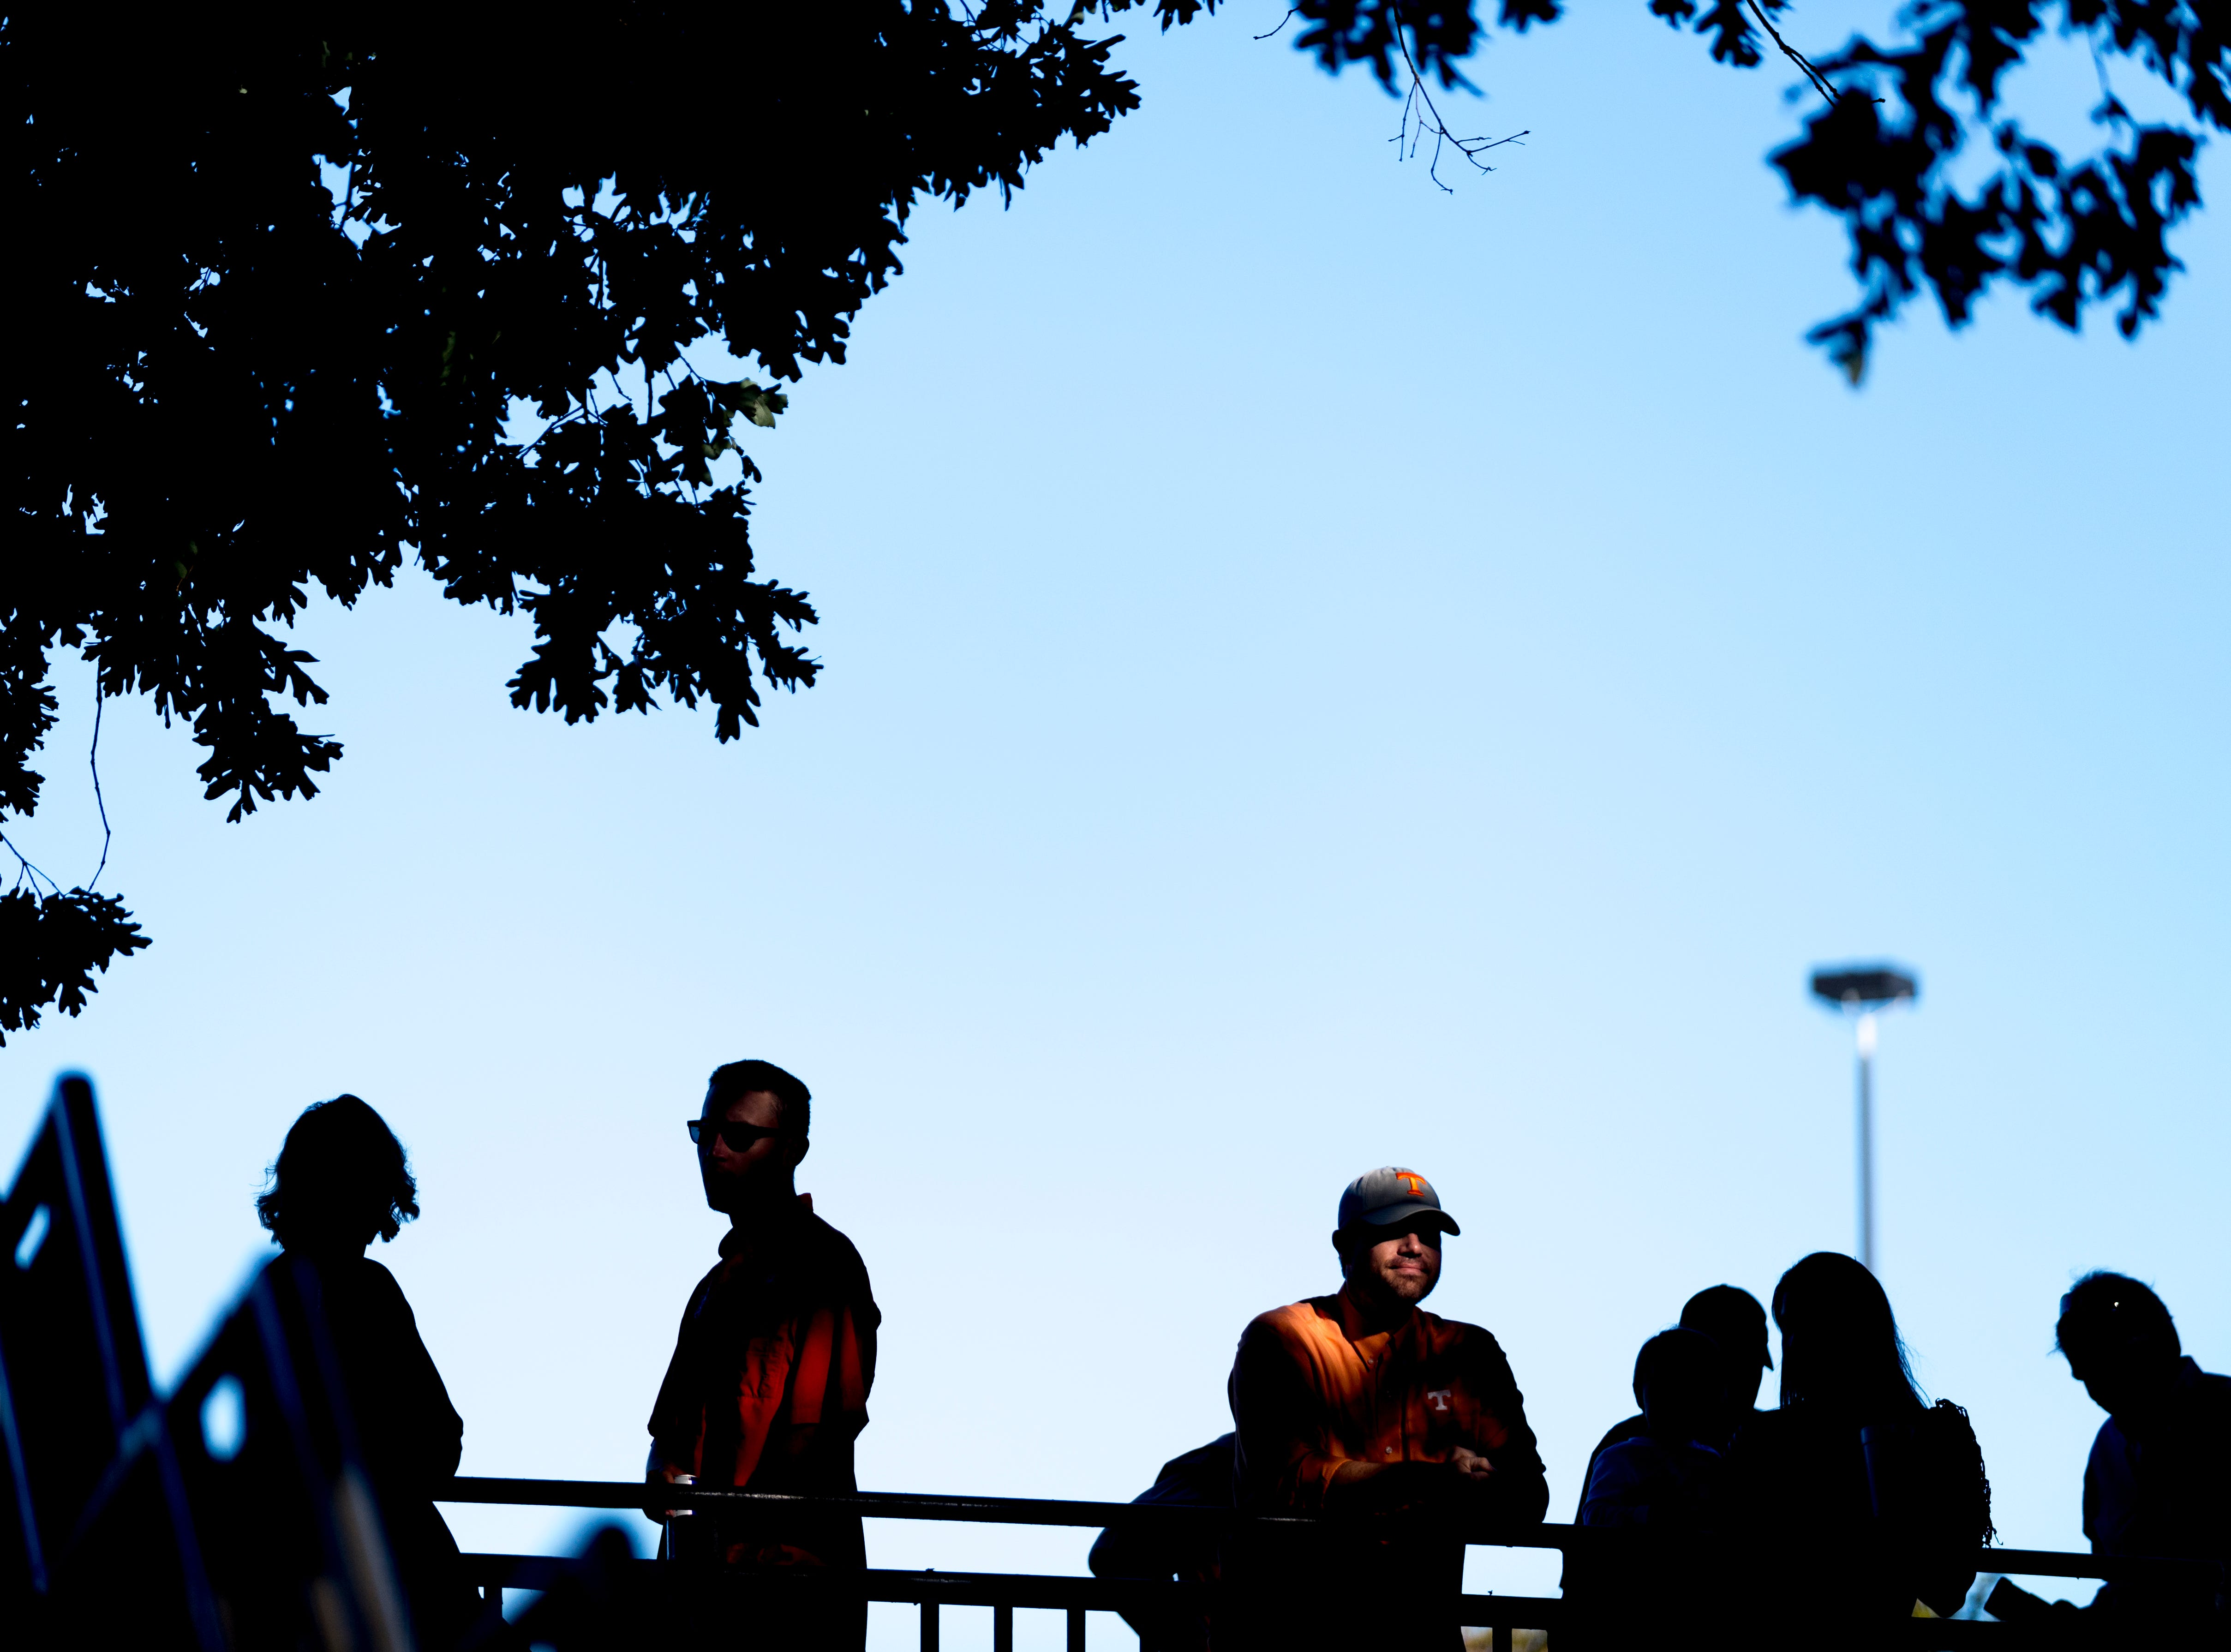 Jonathan Wood, of Tullahoma, Tennessee, stands in the shade with his family during a game between Tennessee and Auburn at Jordan-Hare Stadium in Auburn, Alabama on Saturday, October 13, 2018.